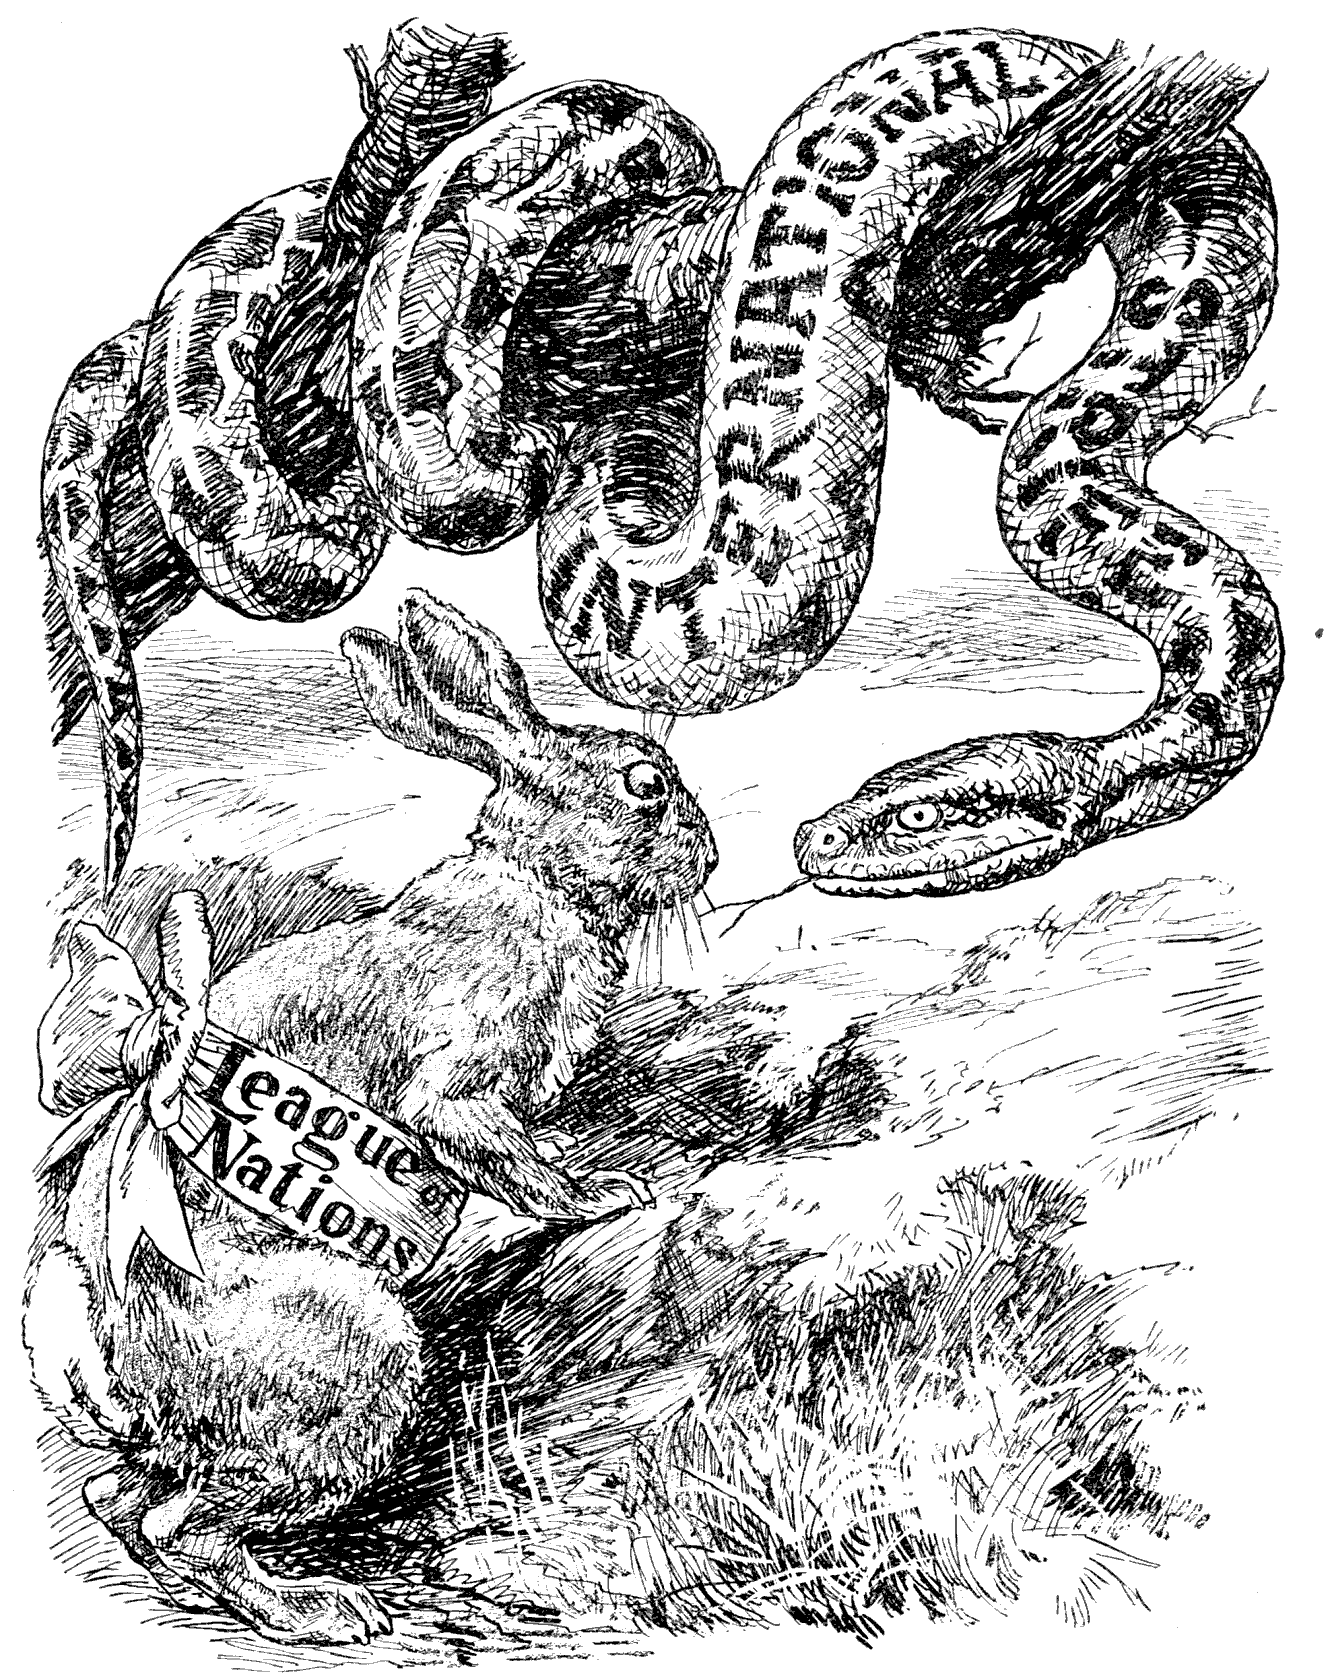 Punch, July 28th, 1920.